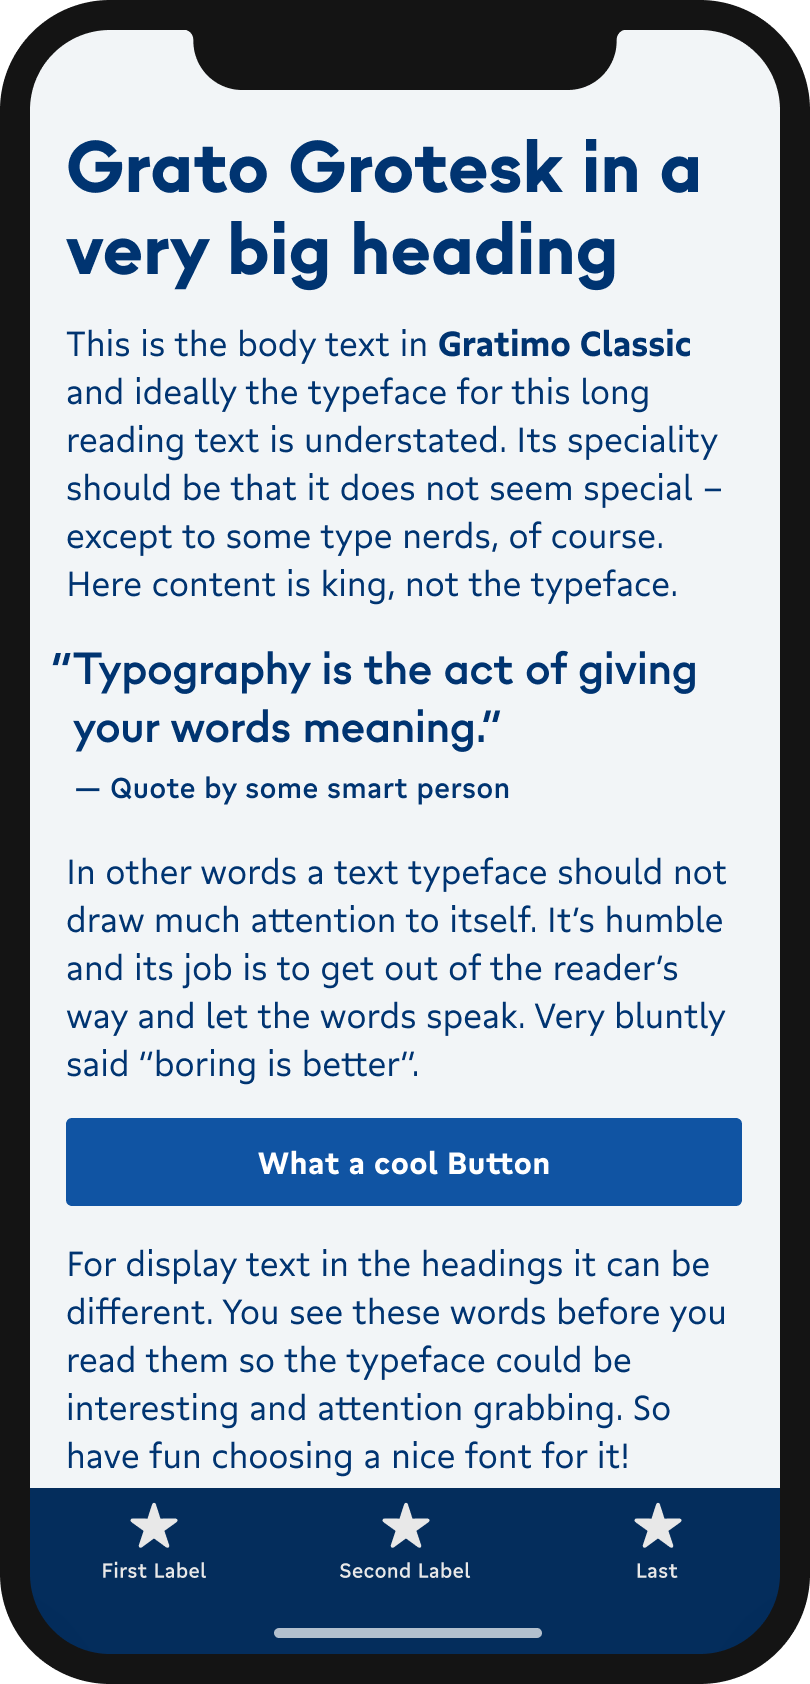 The geometric sans-serif typeface Grato Grotesk on a mobile phone in a headline and pull quote. The friendlier humanist typeface Gratimo Classic in body text, and Gratimo Grotesk in the labels of a button and navigation.